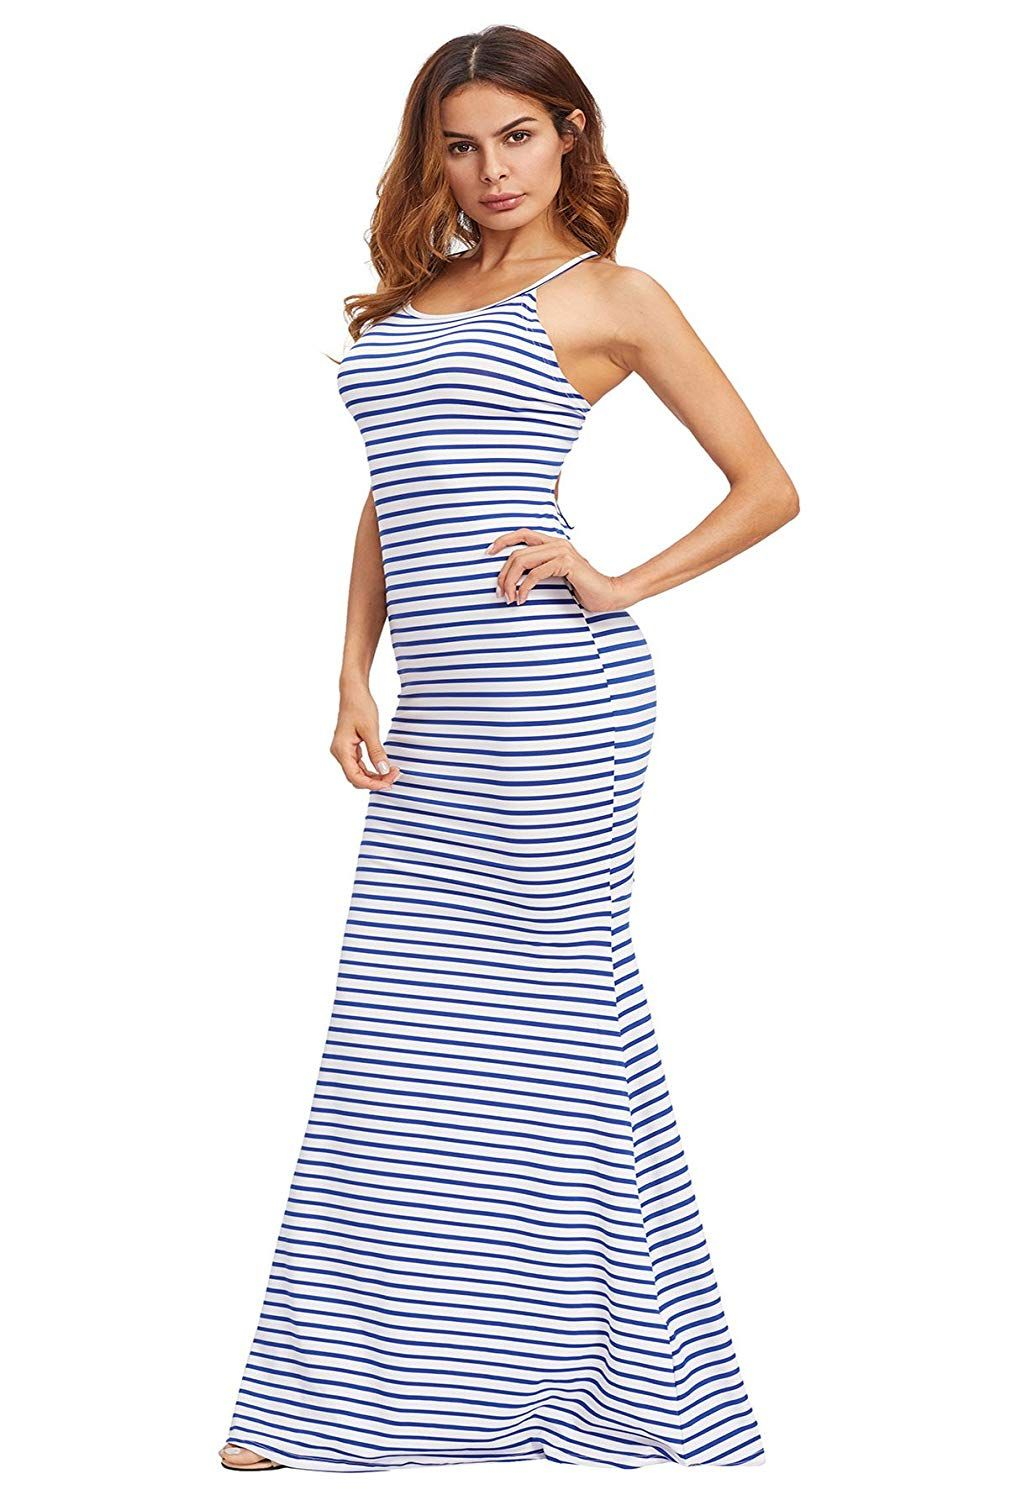 Shein Women S Strappy Backless Summer Evening Party Maxi Dress At Amazon Women S Clothing Store Maxi Dress Maxi Dress Party Dresses [ 1500 x 1032 Pixel ]